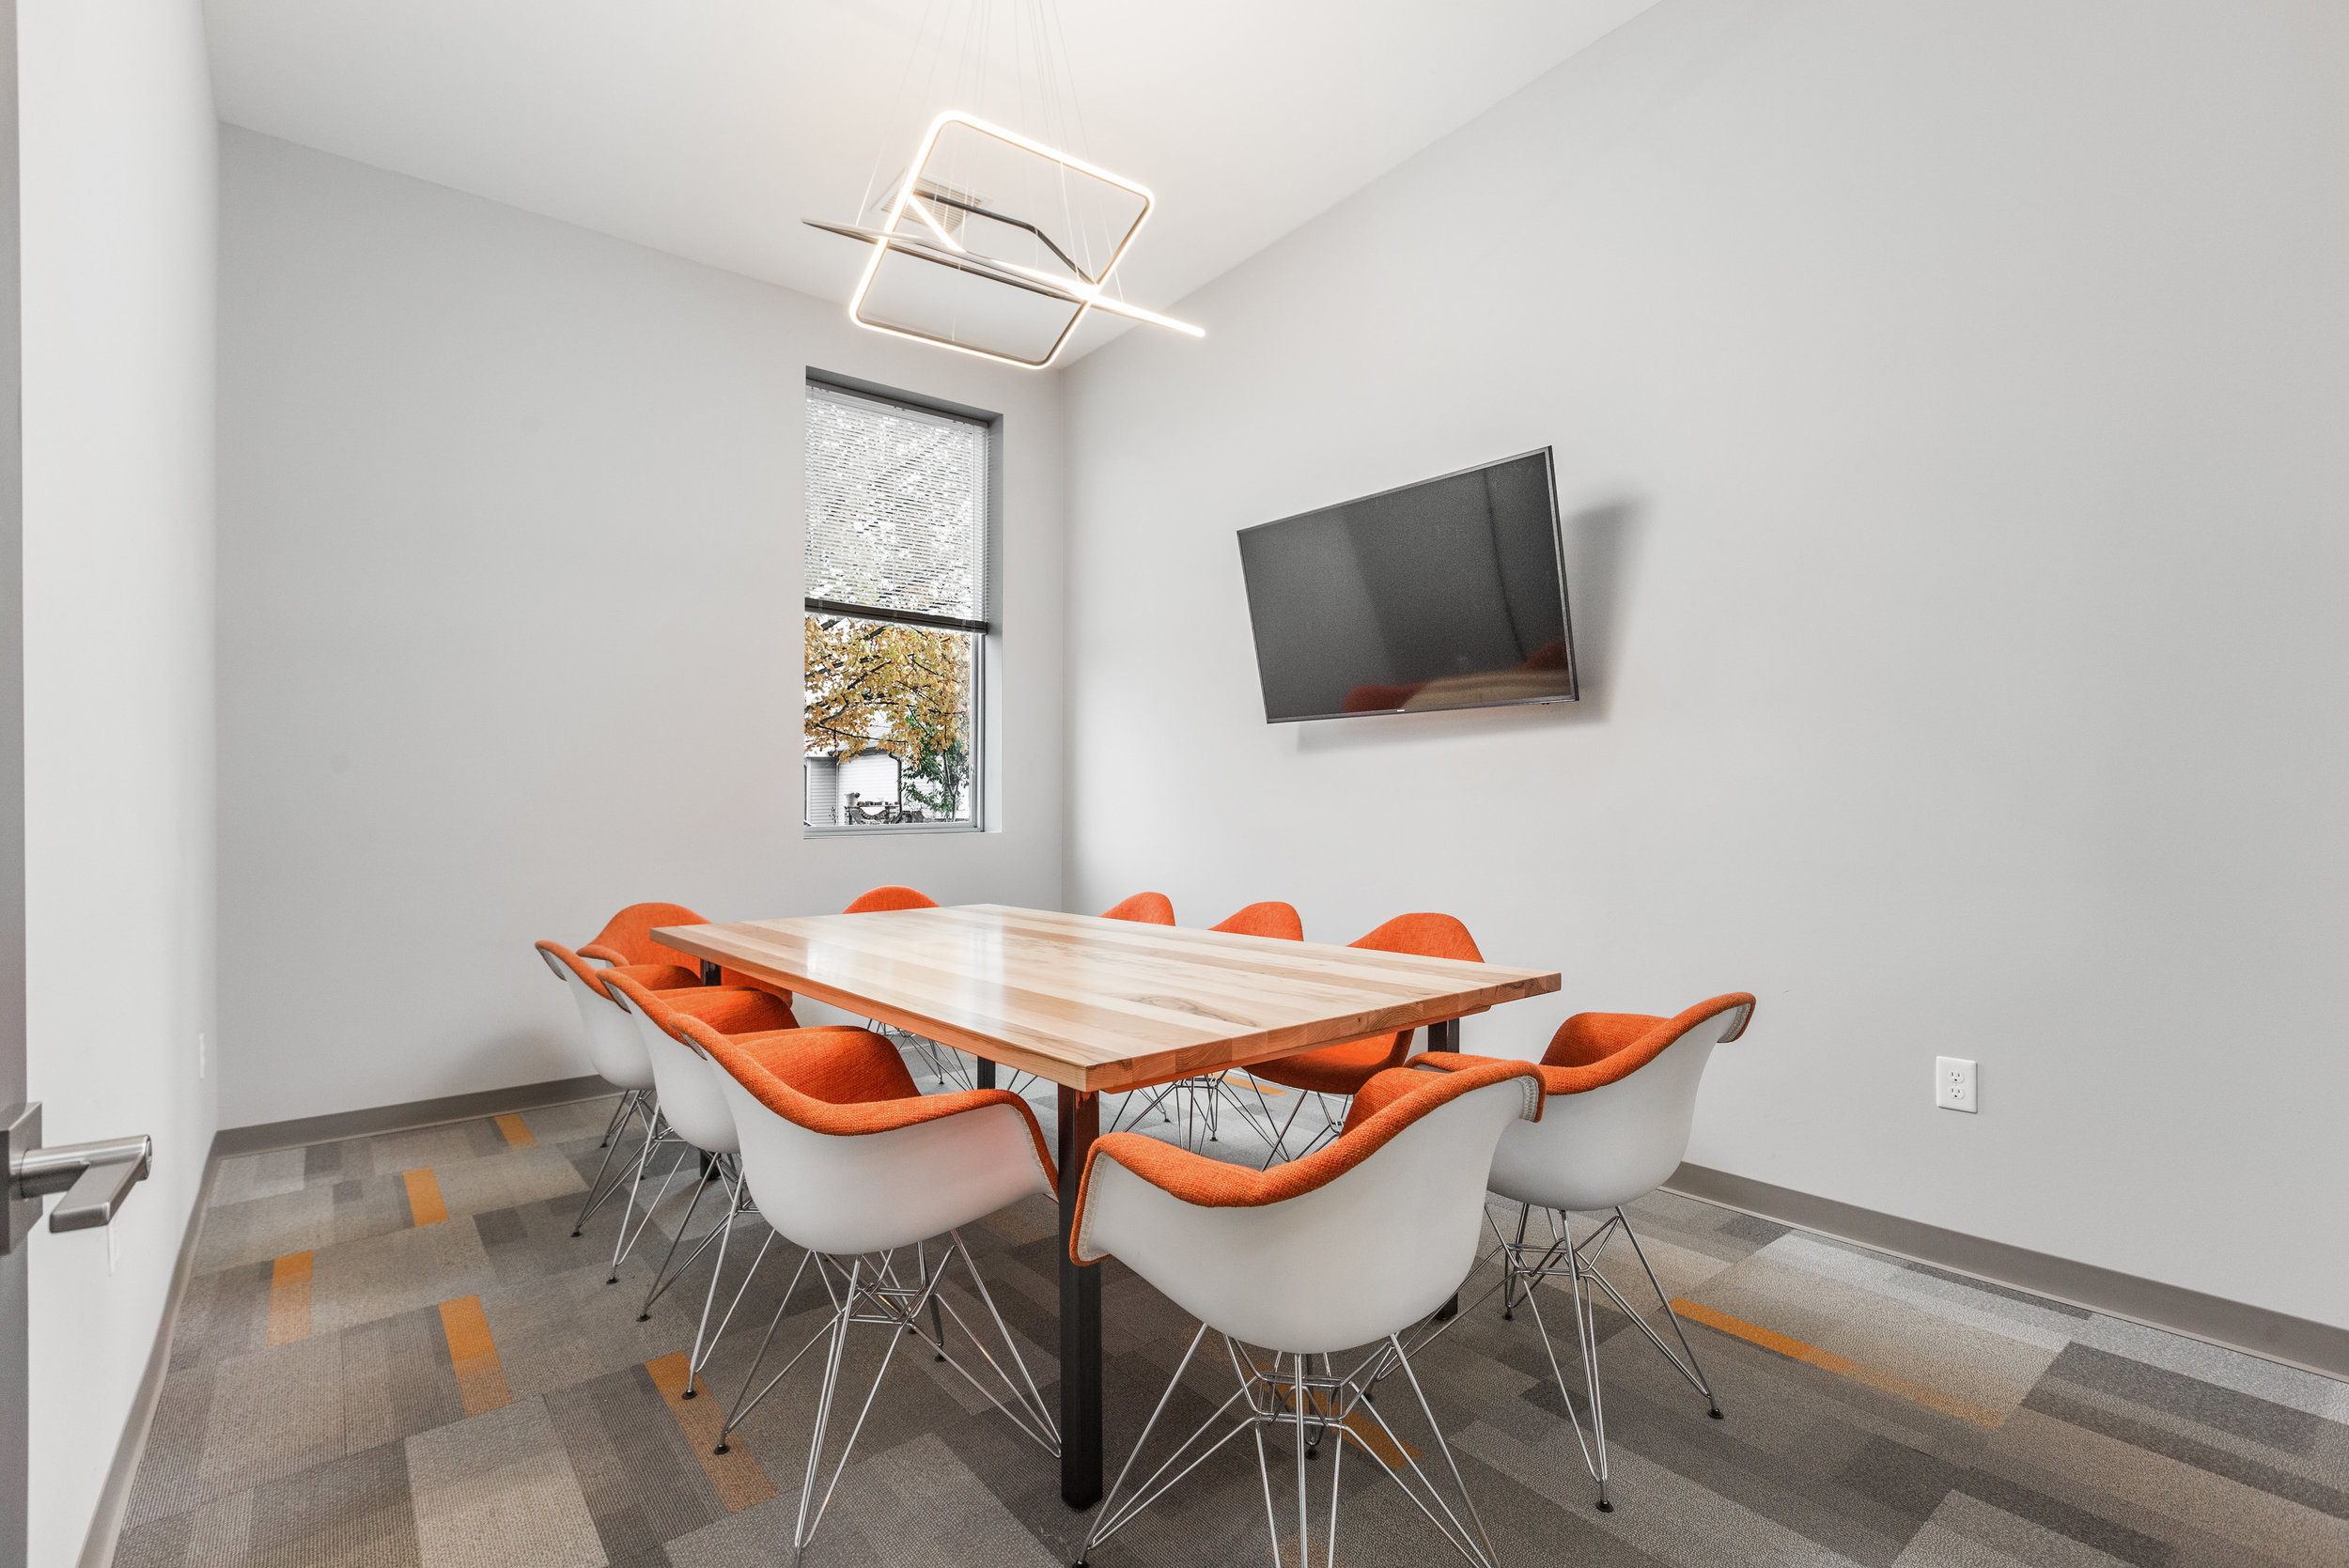 The Exchange   Our largest conference room accommodates up to 10 guests and includes wi-fi, smart TV with cables, power for laptops, and whiteboard. $50/hour.